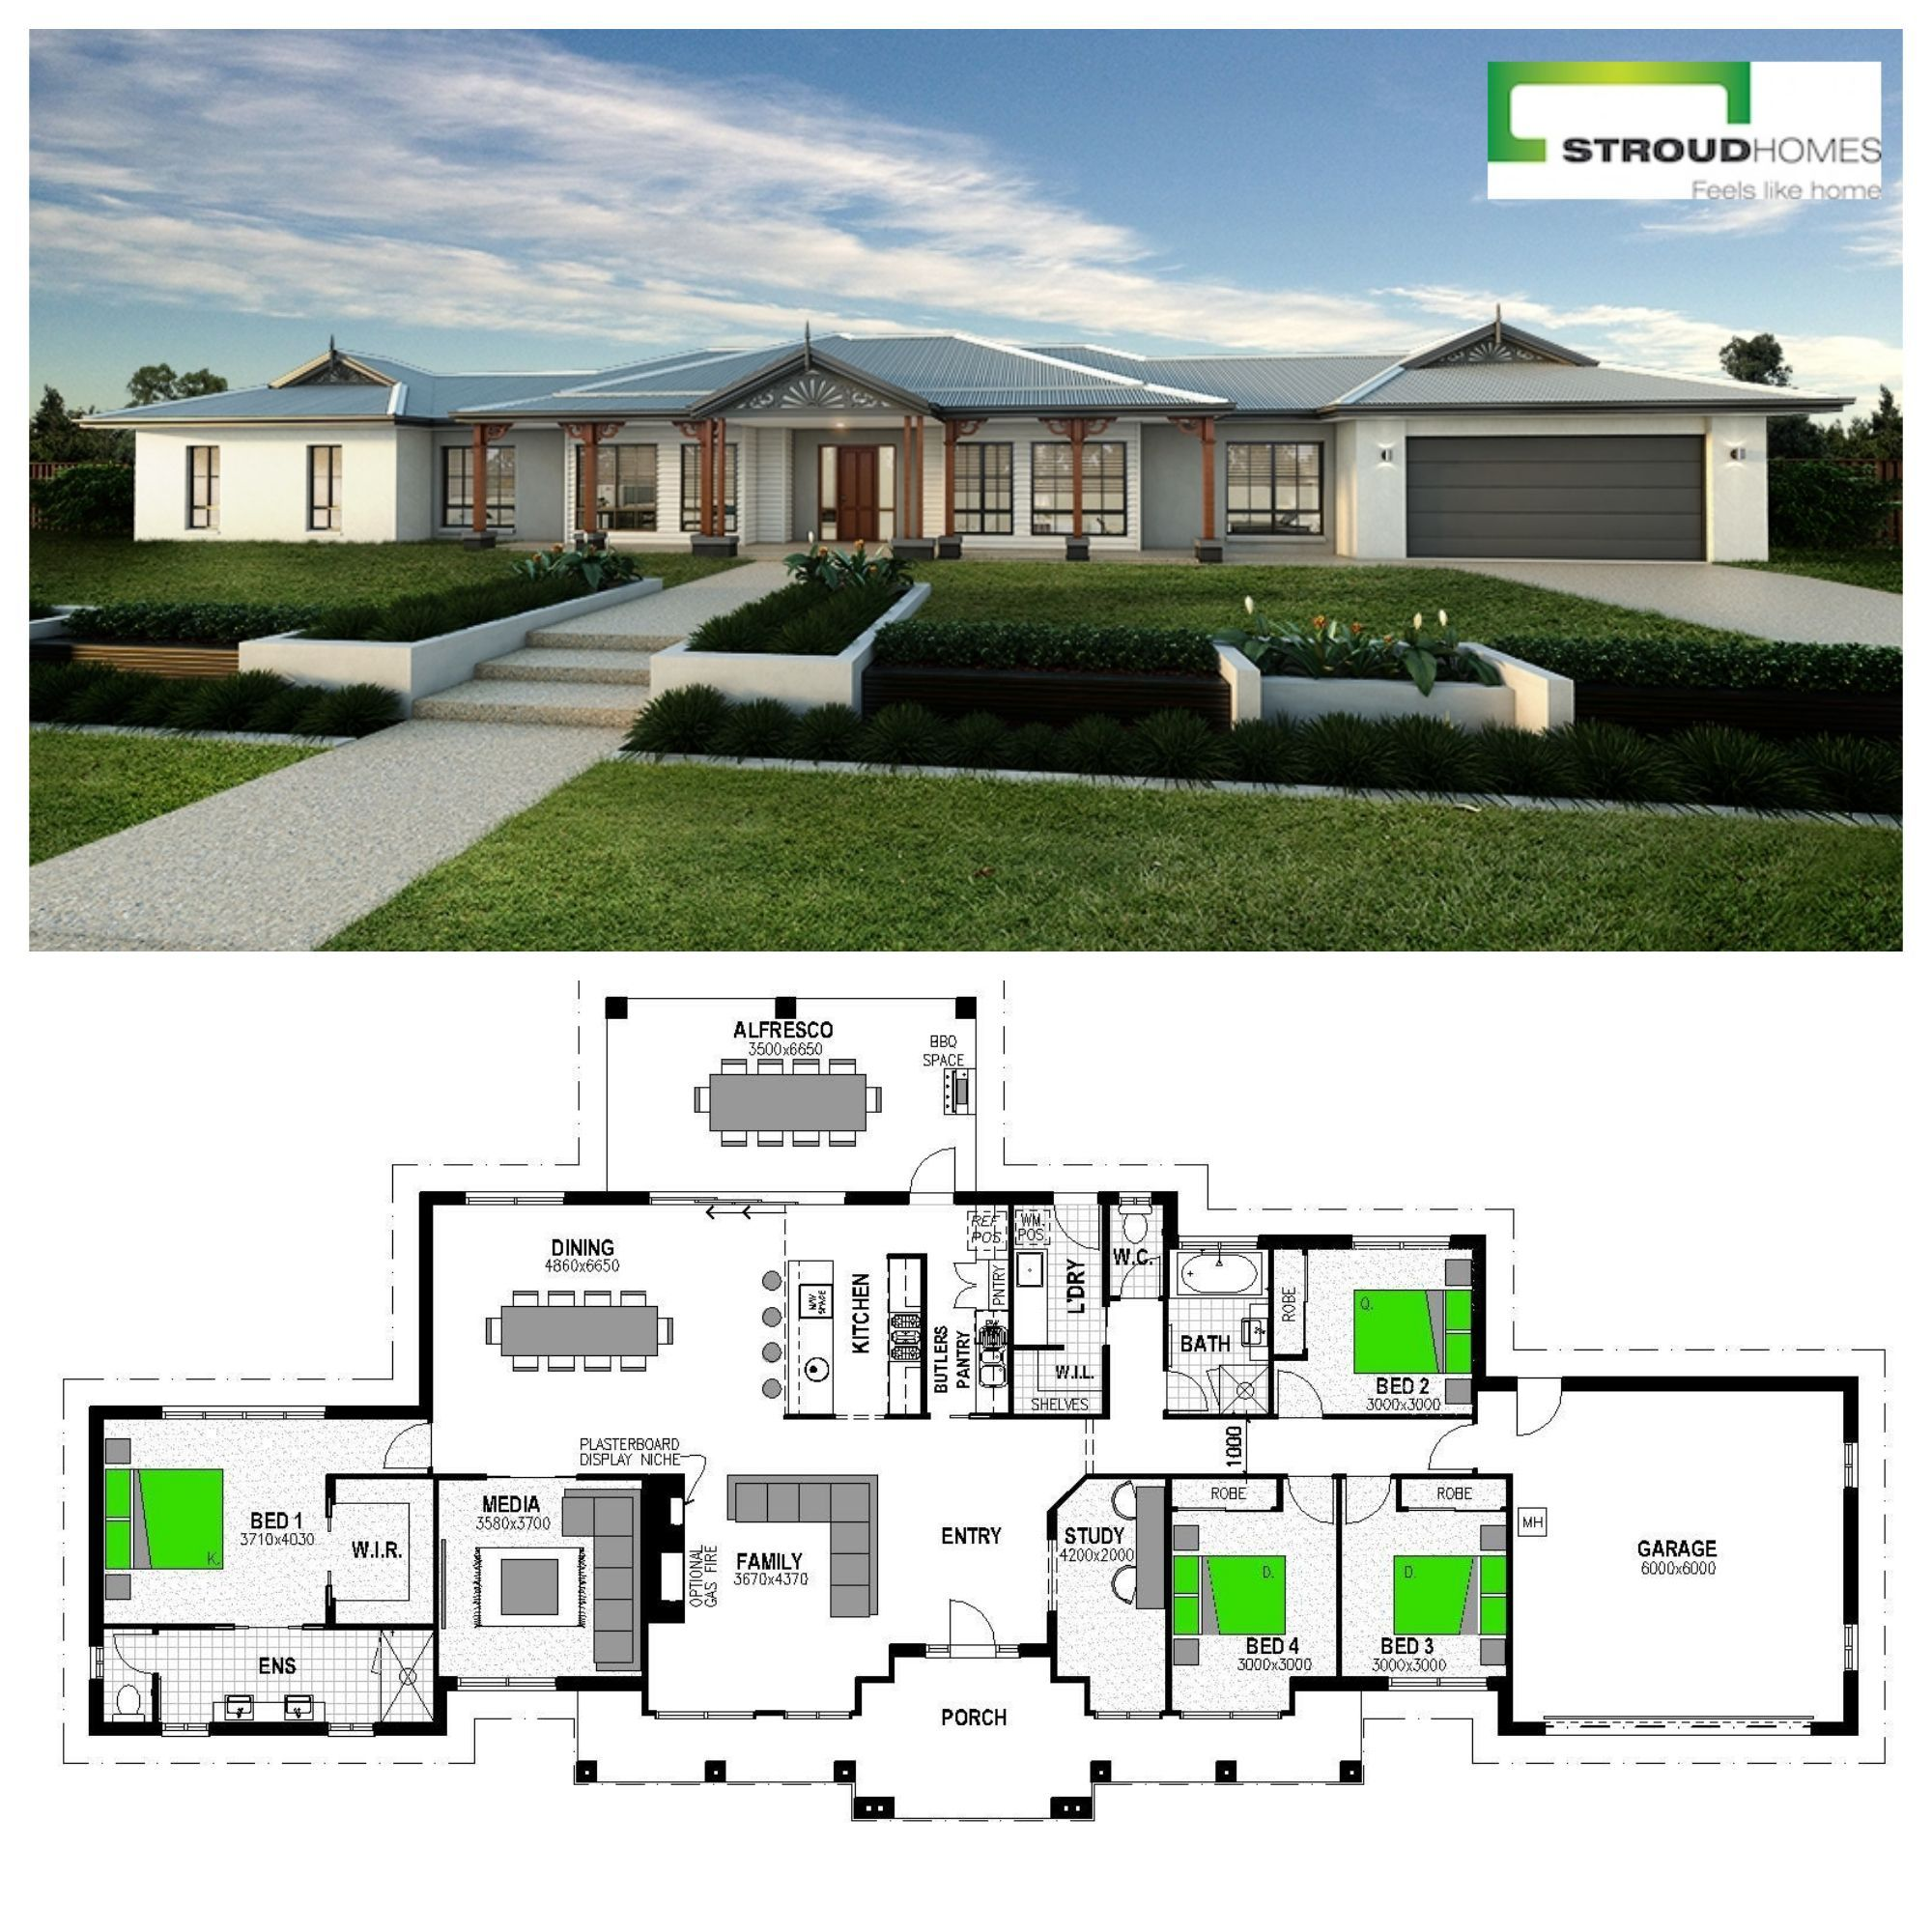 House And Land Packages Stroud Homes Beautiful House Plans Single Storey House Plans Family House Plans